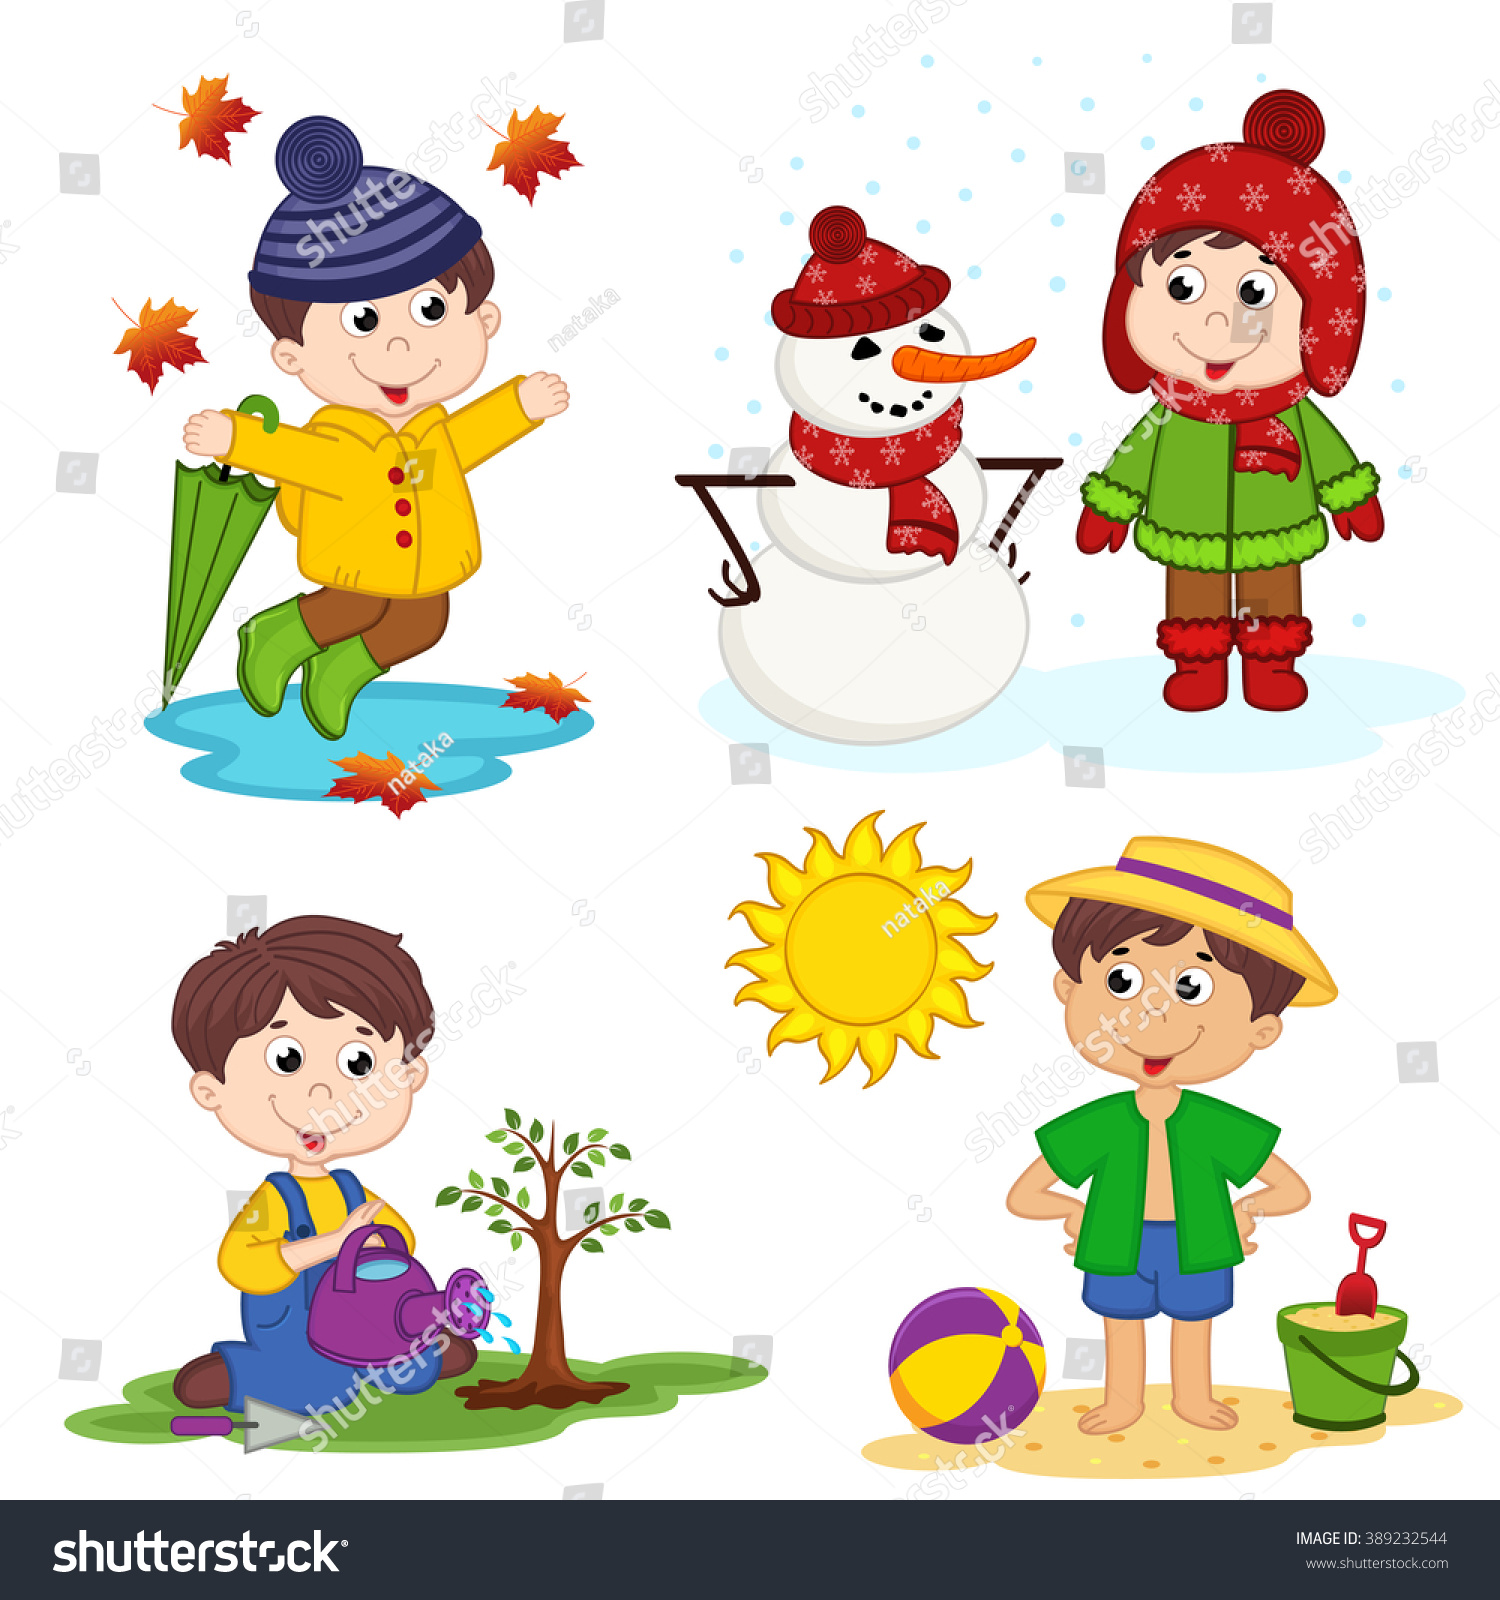 Boy Four Seasons Vector Illustration Eps Stock Vector